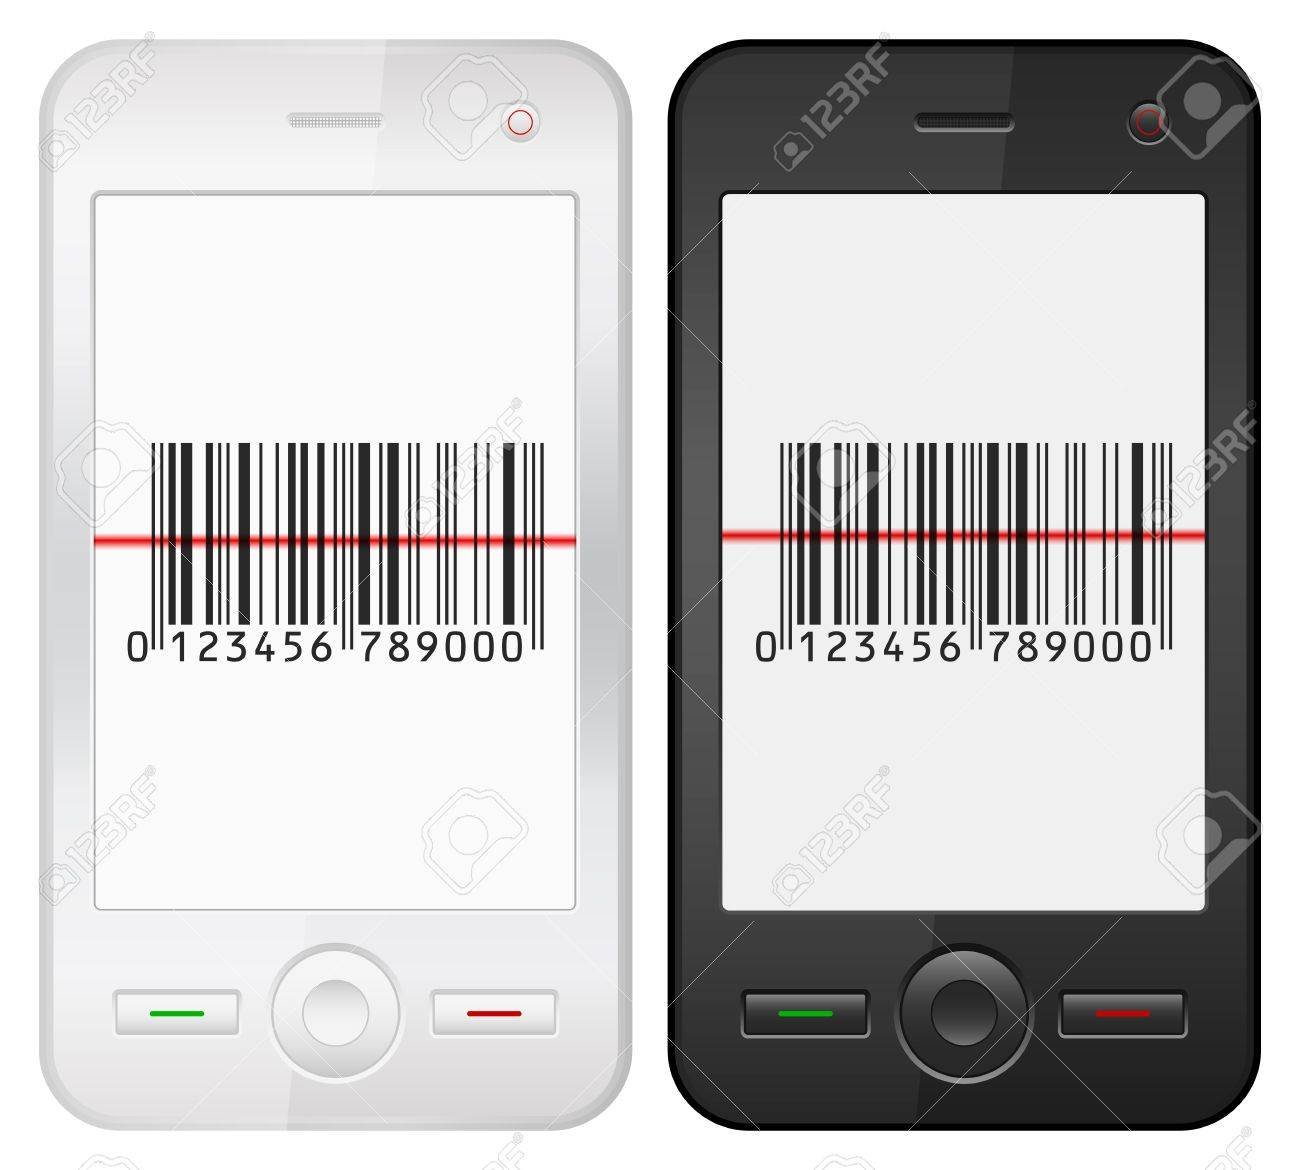 Mobile phone with barcode scanner on a white background